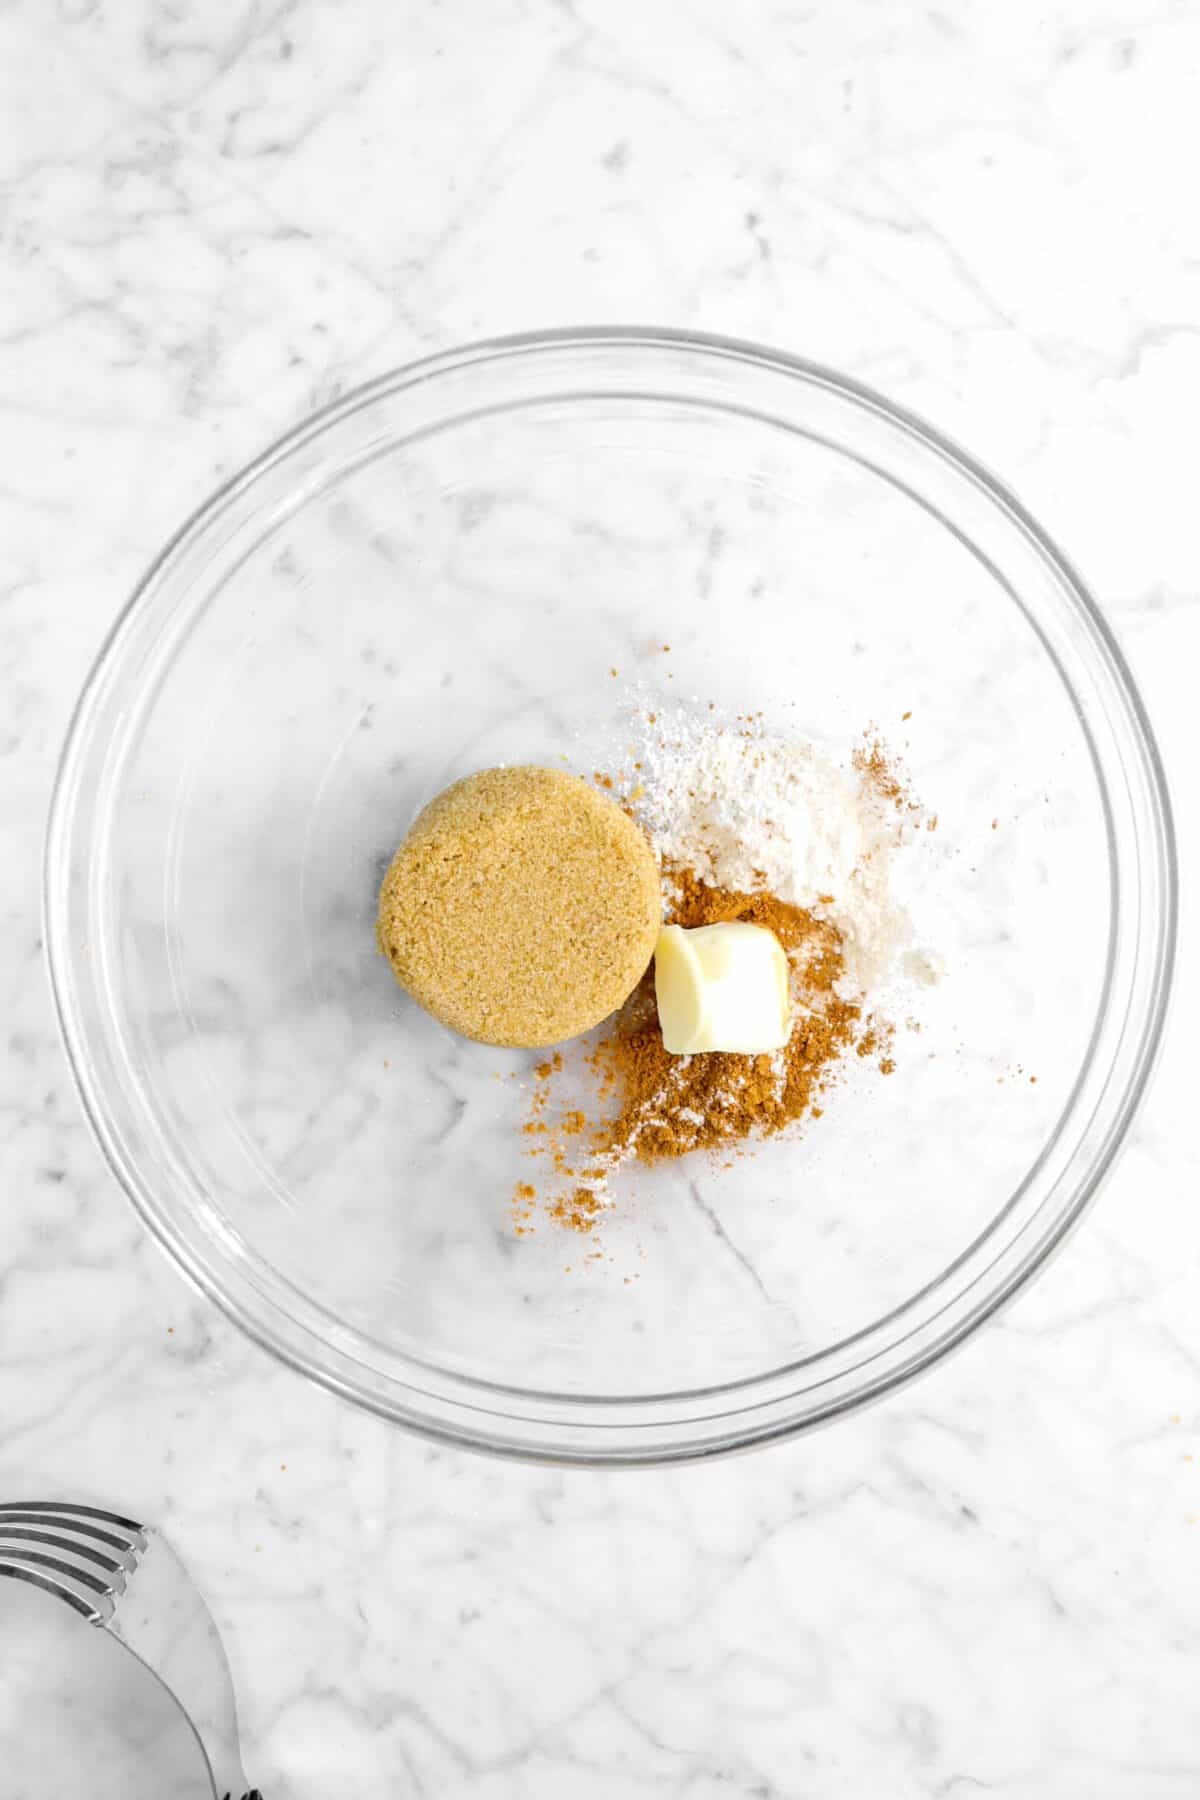 brown sugar, flour, butter, and cinnamon in a large glass bowl